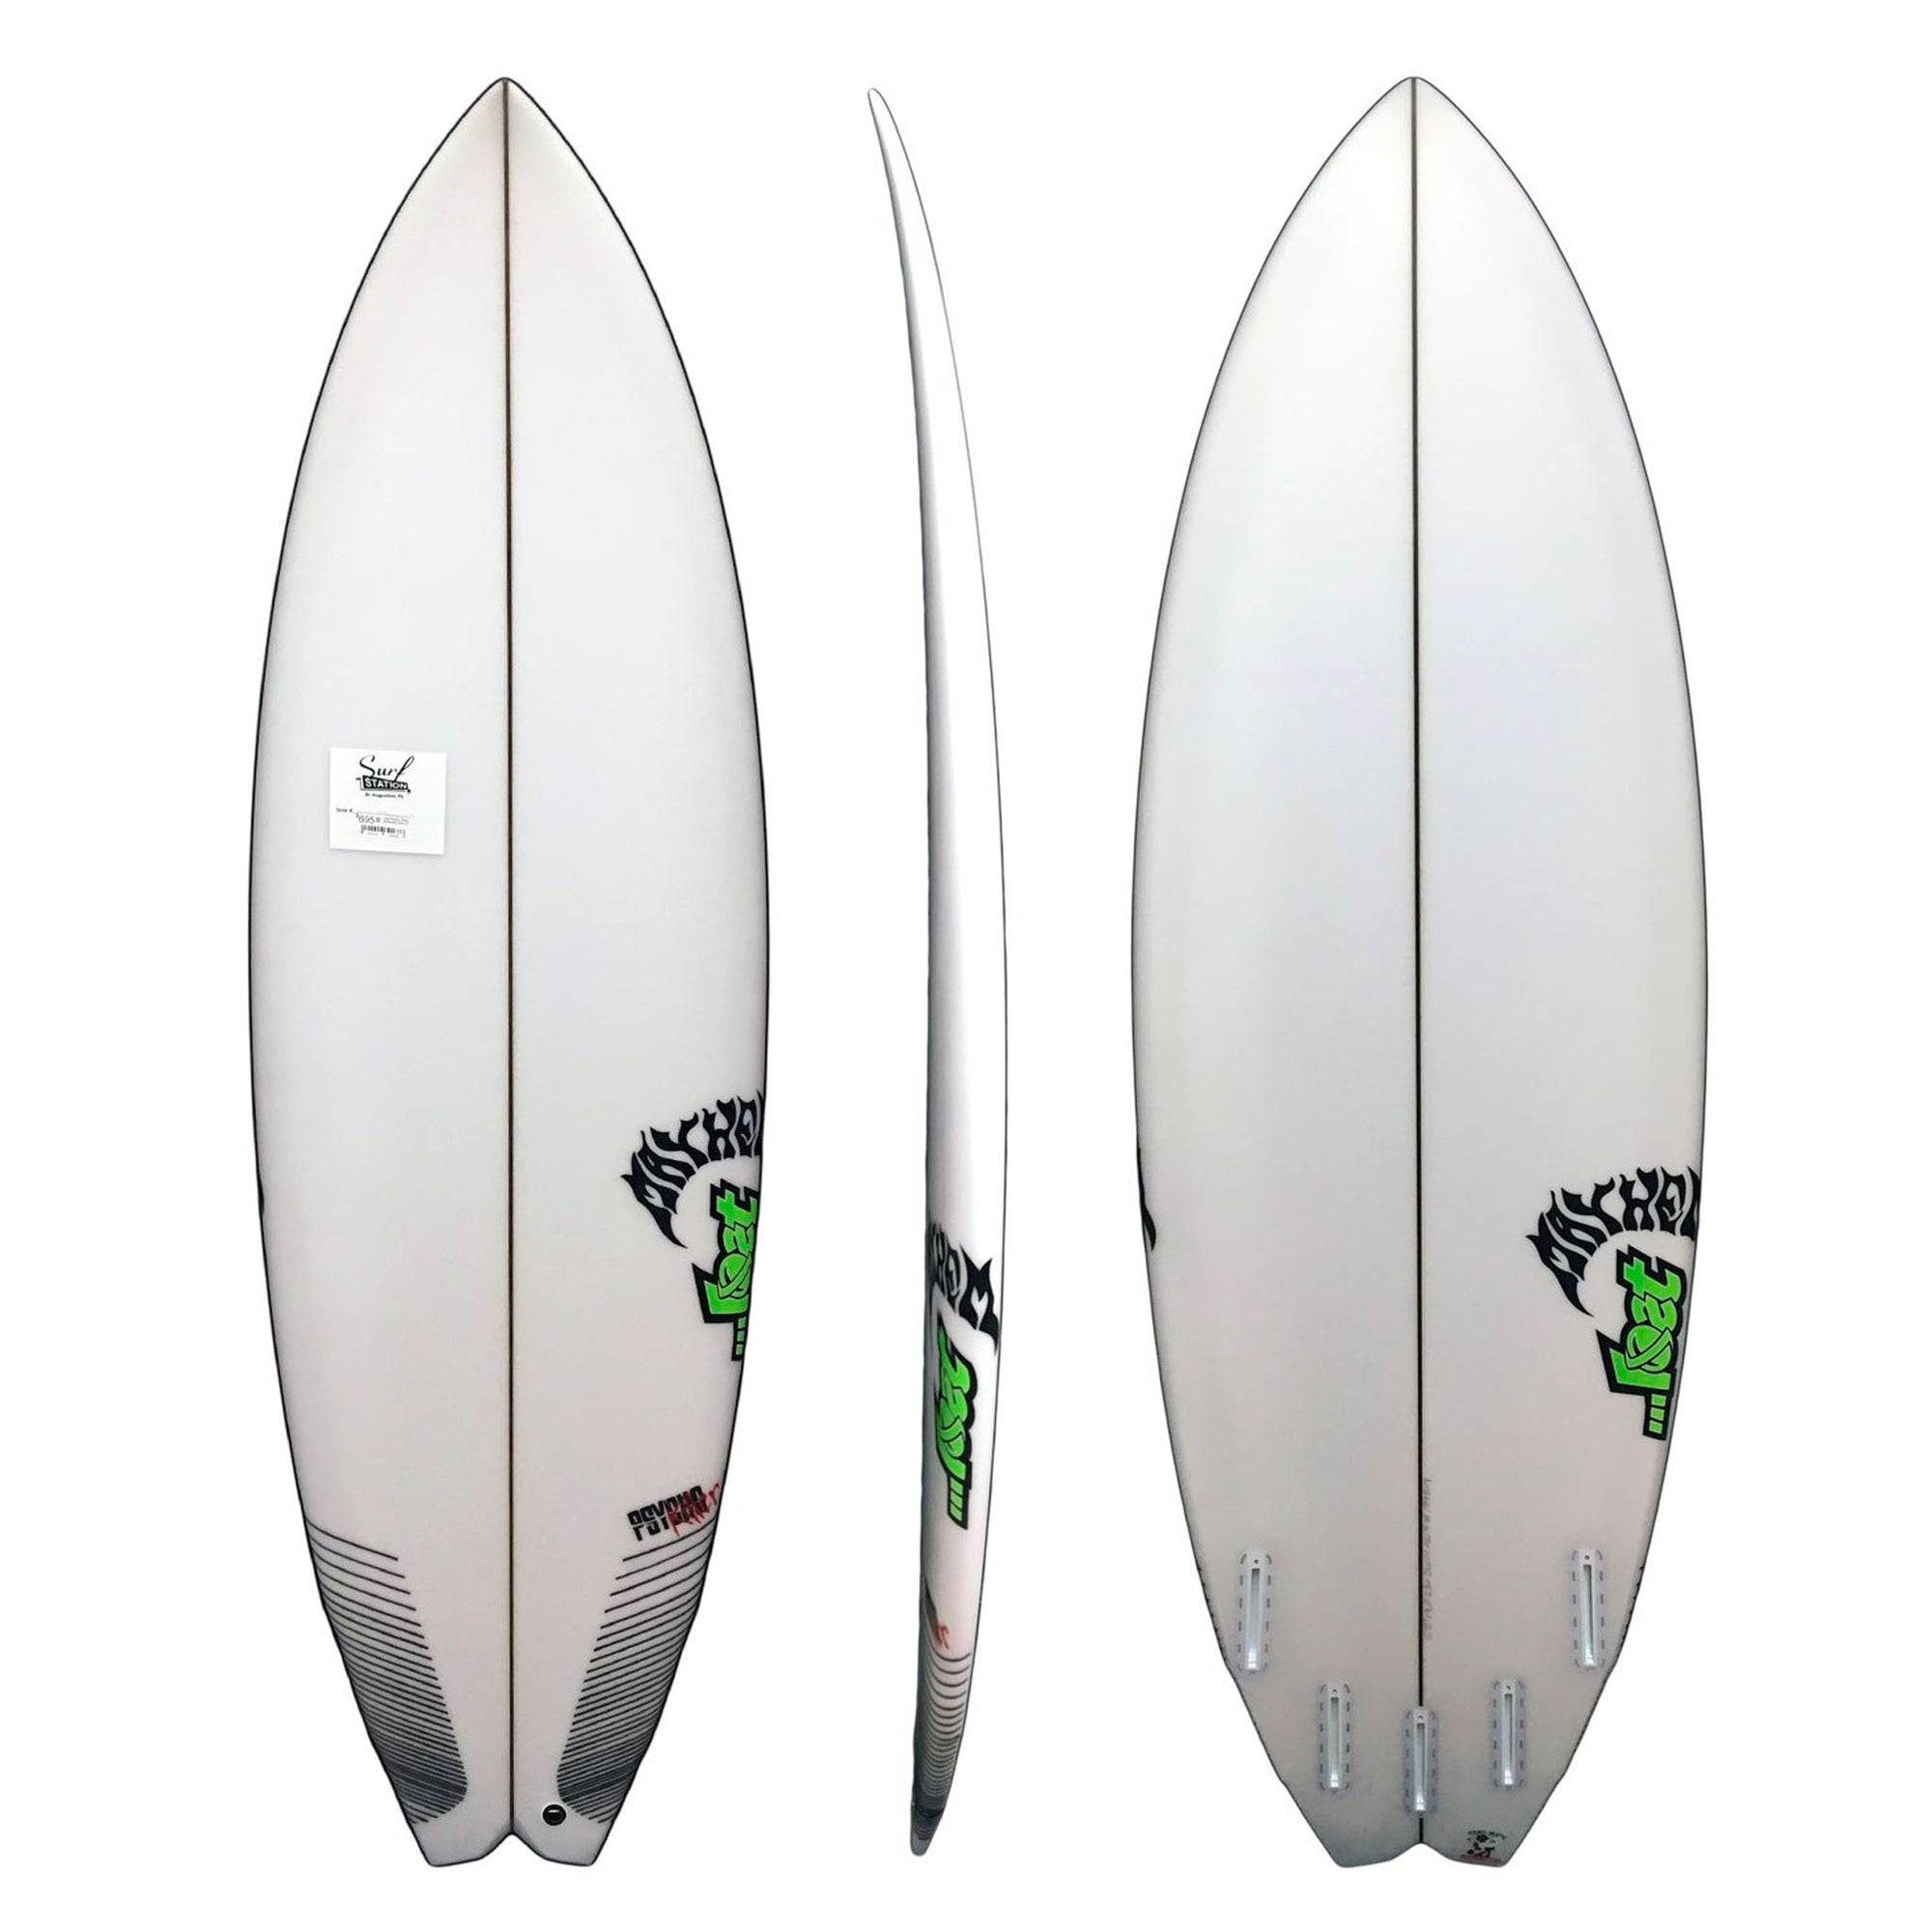 Lost Psycho Killer Surfboard